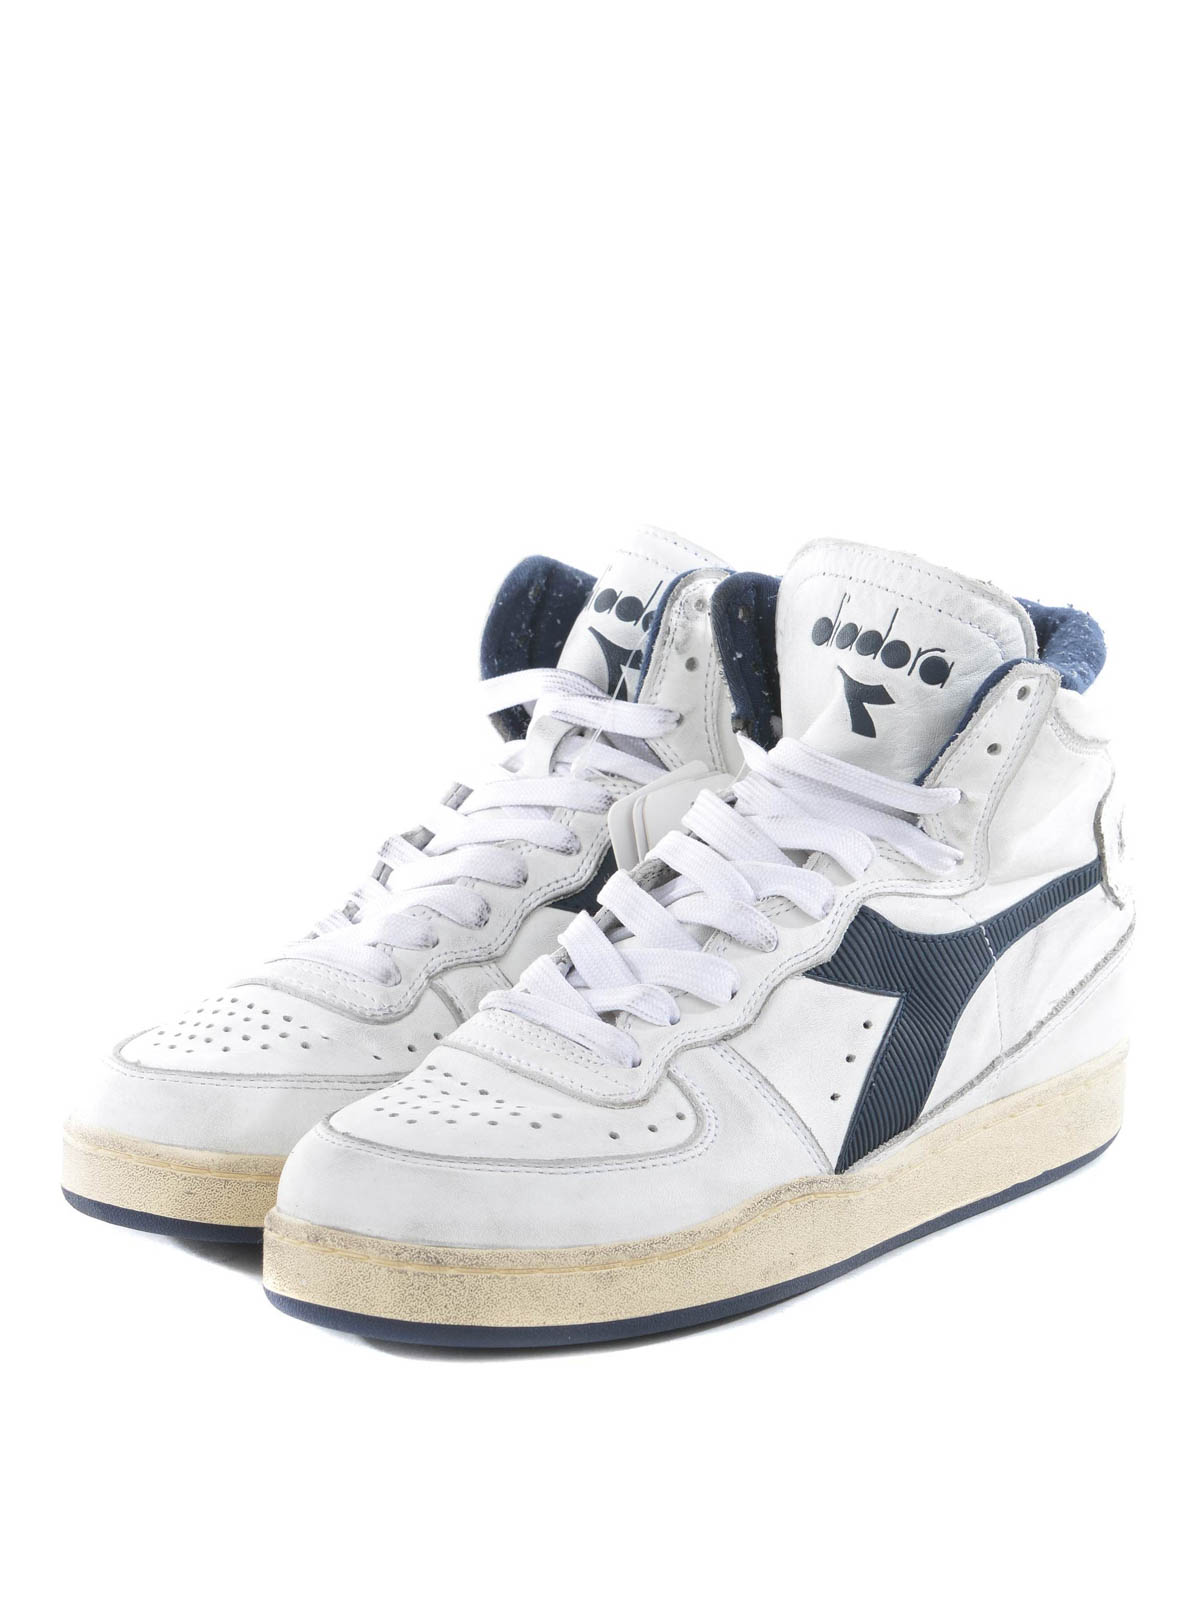 Diadora Heritage Mi Basket Used Sneakers Trainers